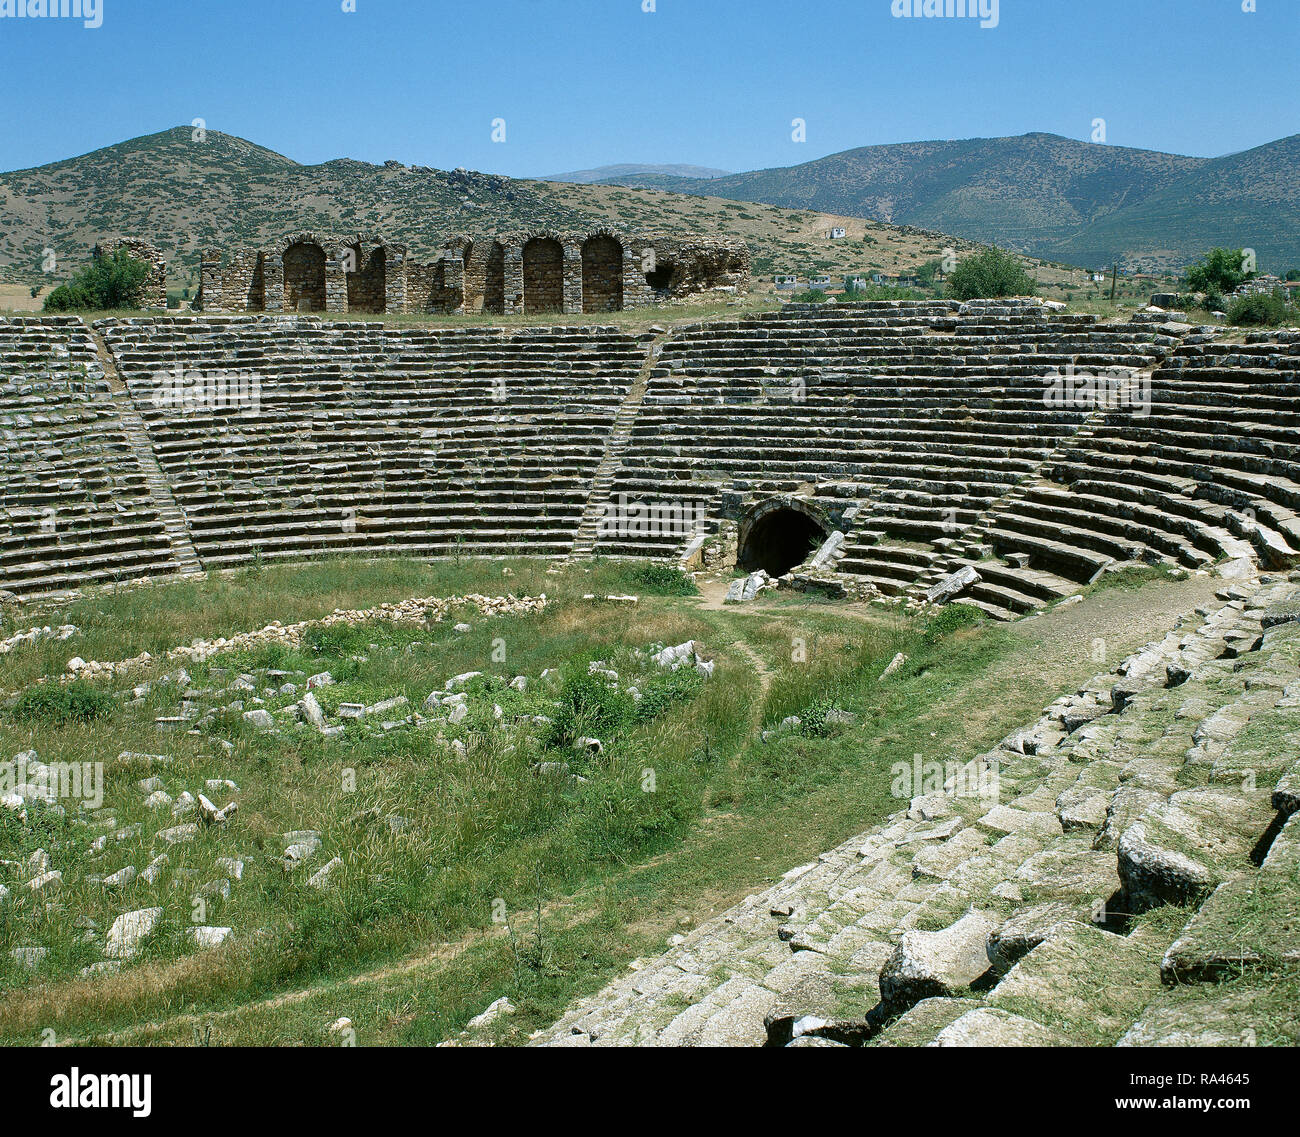 Turkey. Aphrodisias. Ancient Greek Classical city. The Stadium. It was built in the later 1st century AD. Originally designed for athletic contests. Panoramic view of the east end of the building, turned into an amphitheatre and arena specifically designed for Roman-style entertainments, ca. 400 AD. - Stock Image